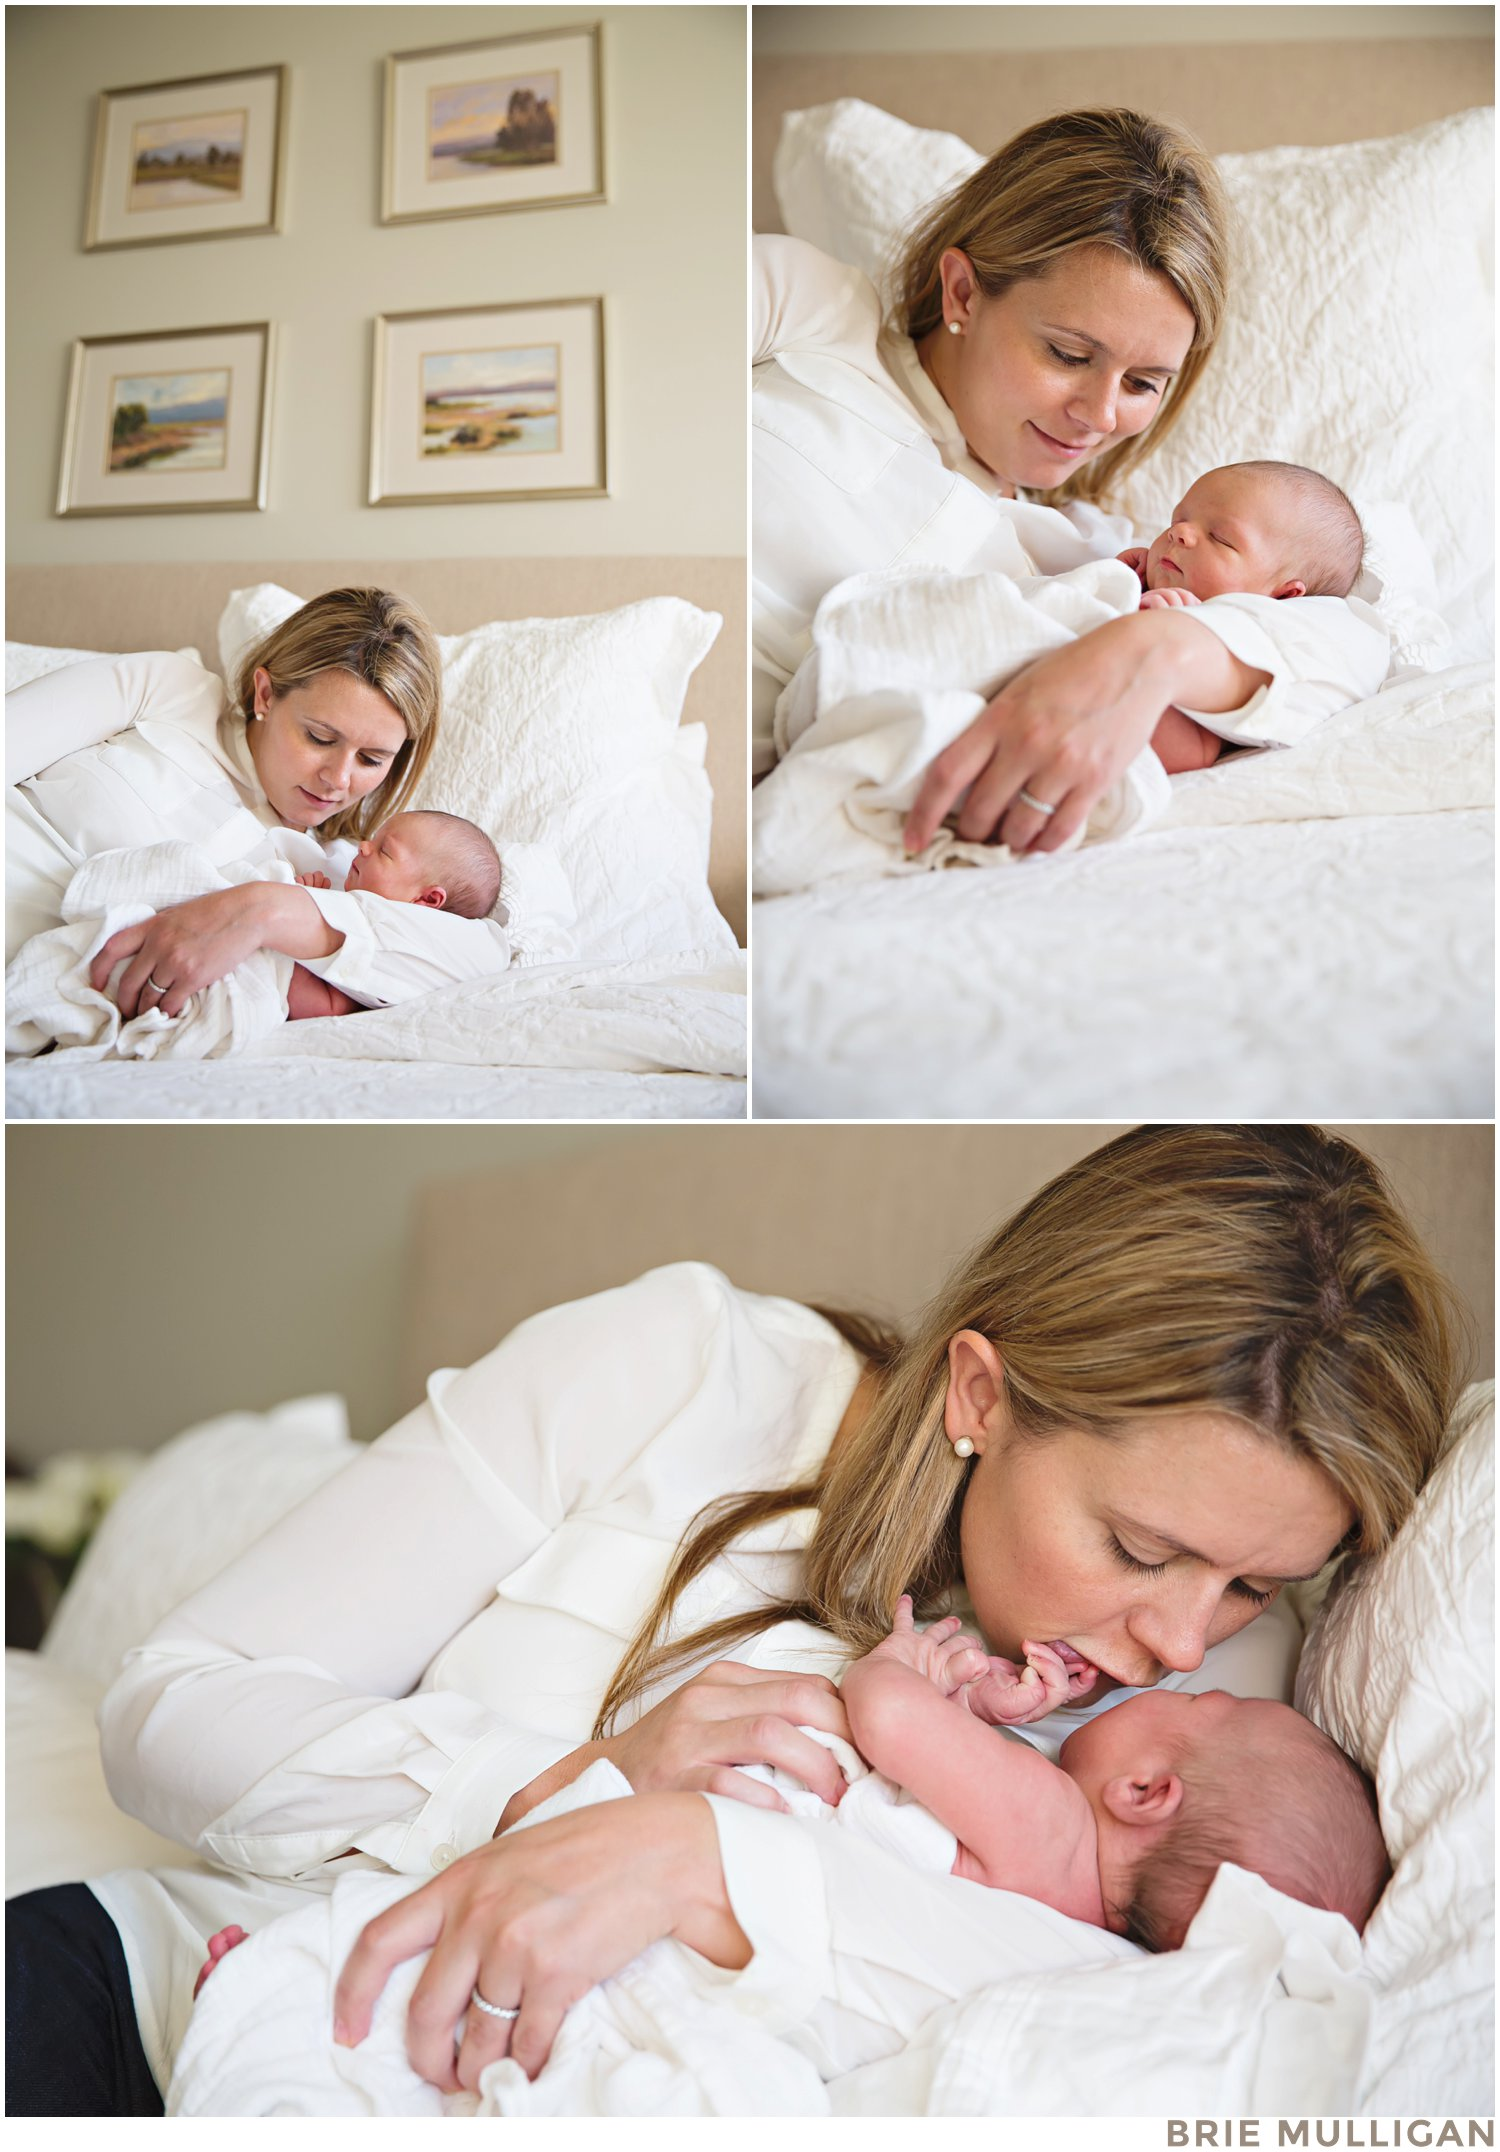 Brie-Mulligan-Lifestyle-Family-and-Newborn-Photographer-Brooklyn-NYC-NJ_0245.jpg